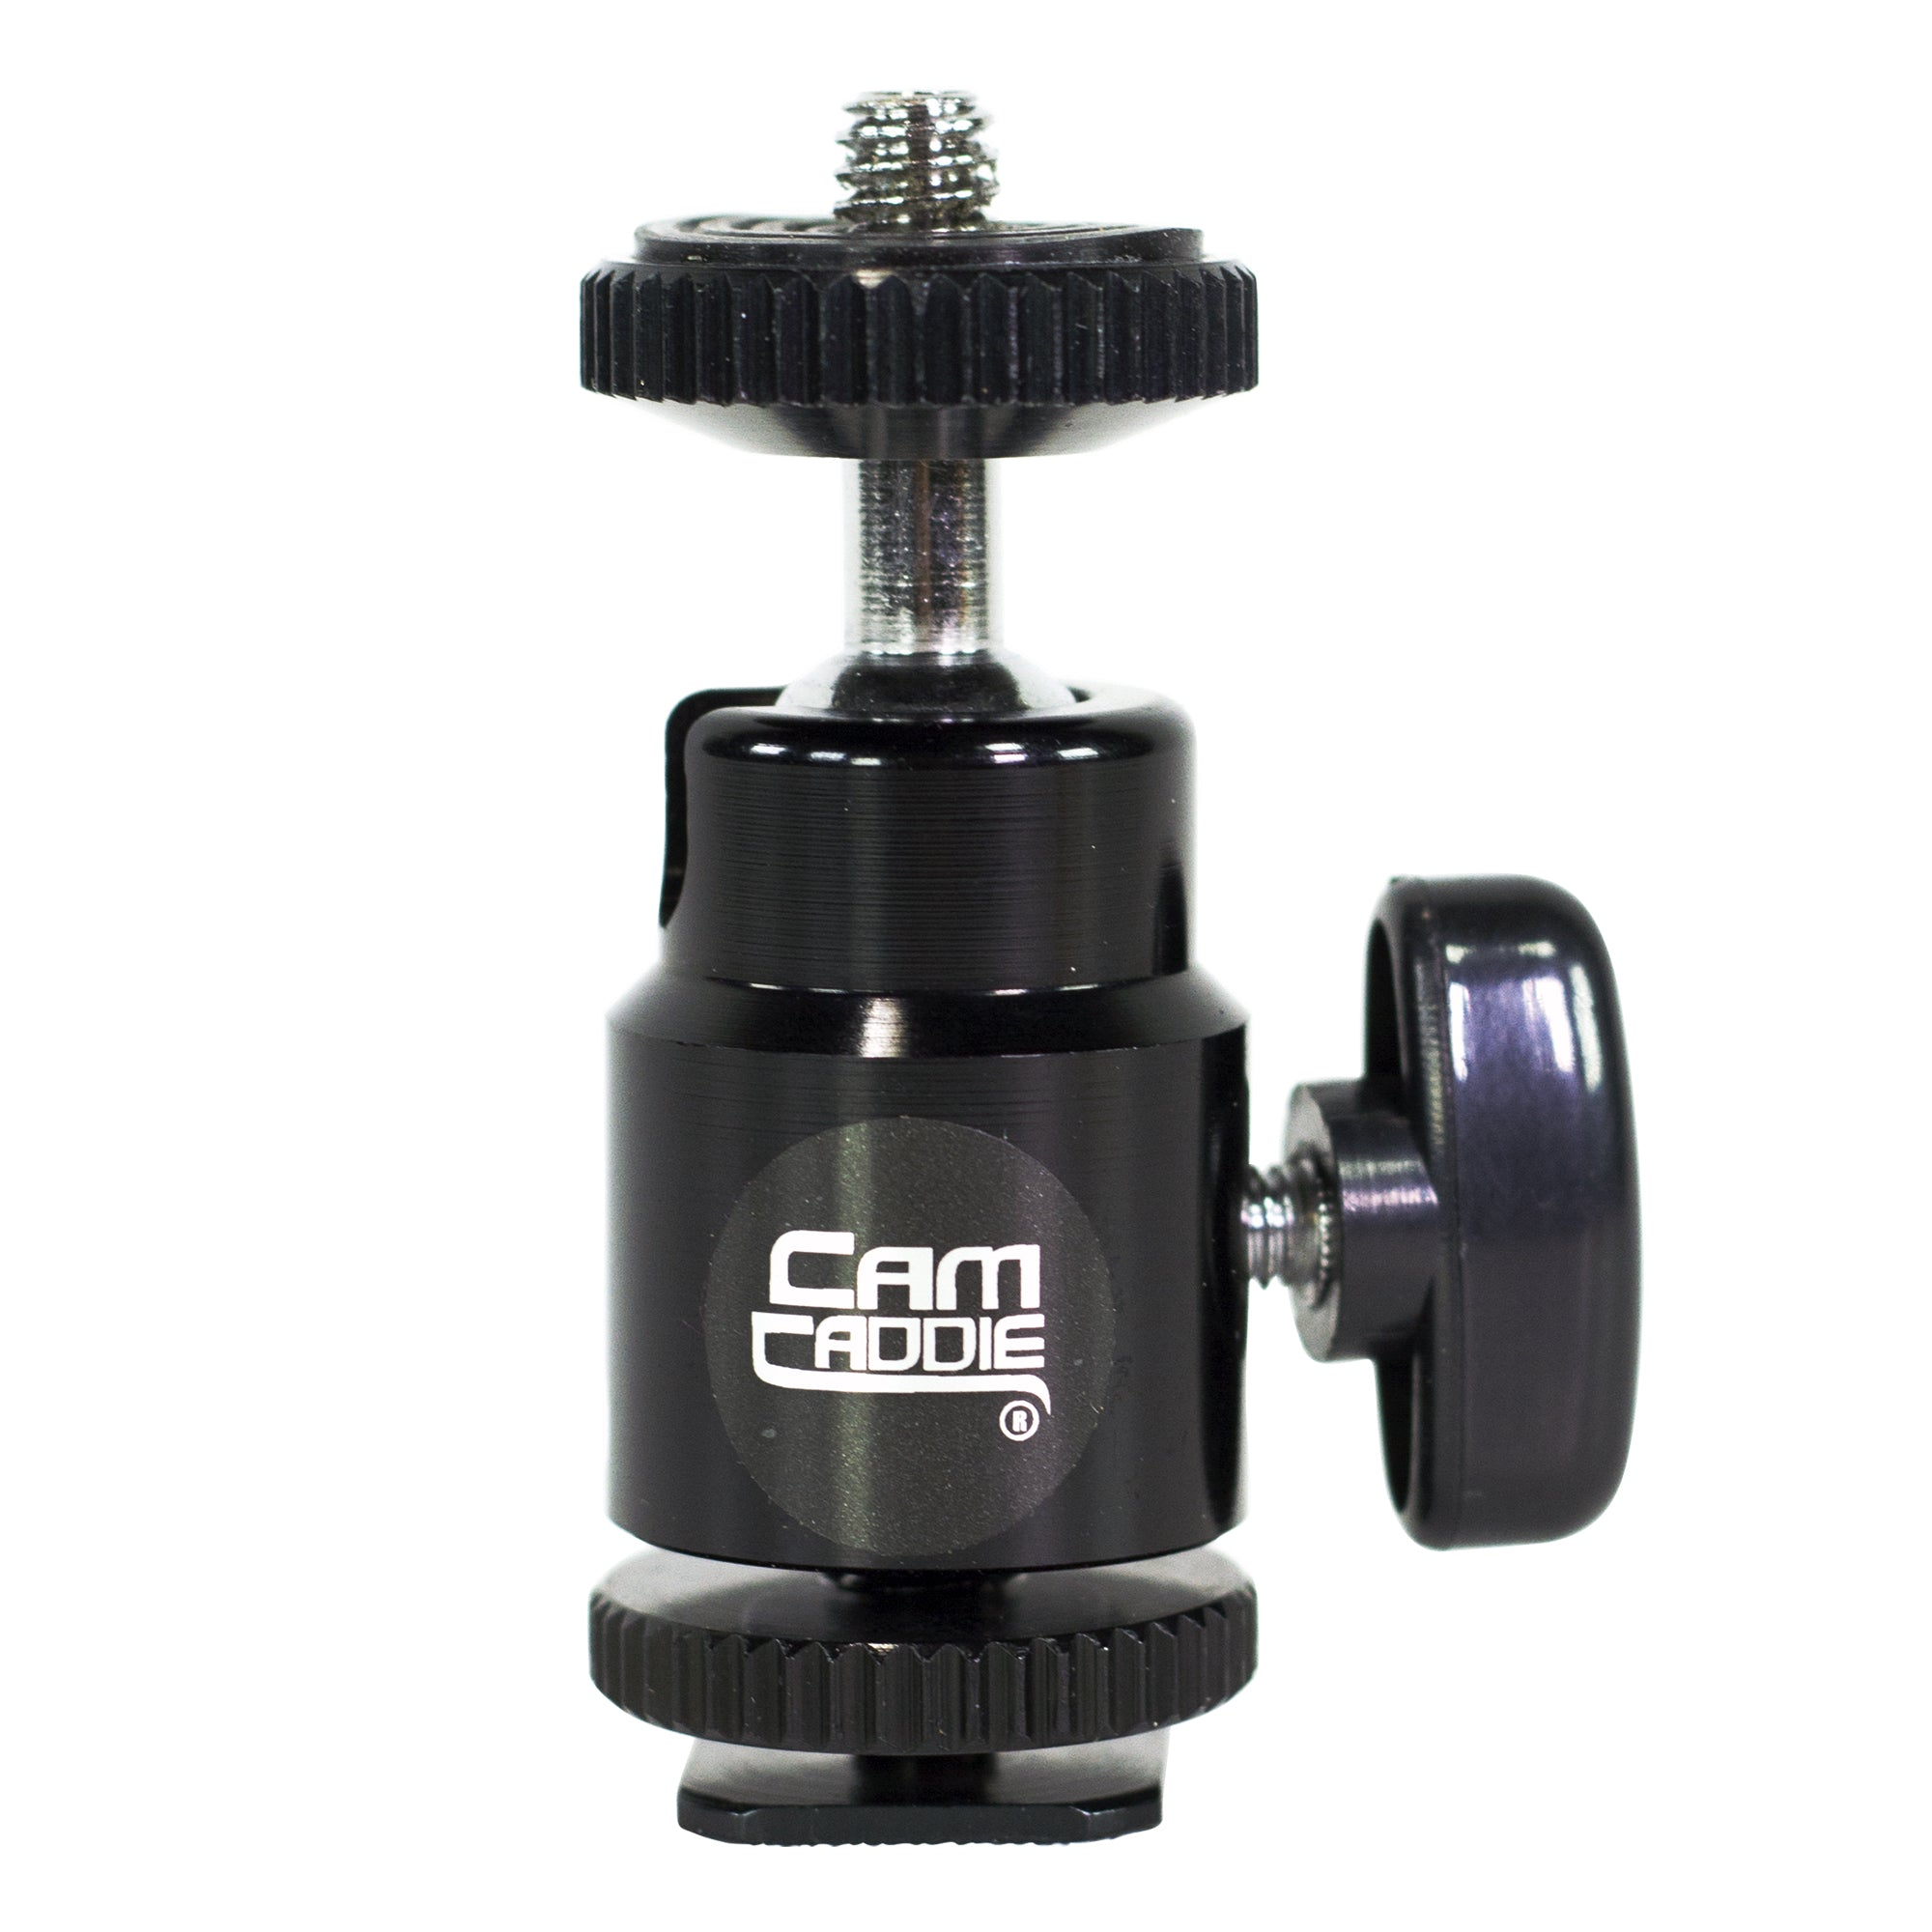 "Cam Caddie Mini Ball Head 1/4""-20 Camera Stabilizer Accessory Mount - Cam Caddie - The Original Universal Stabilizing Camera Handle"